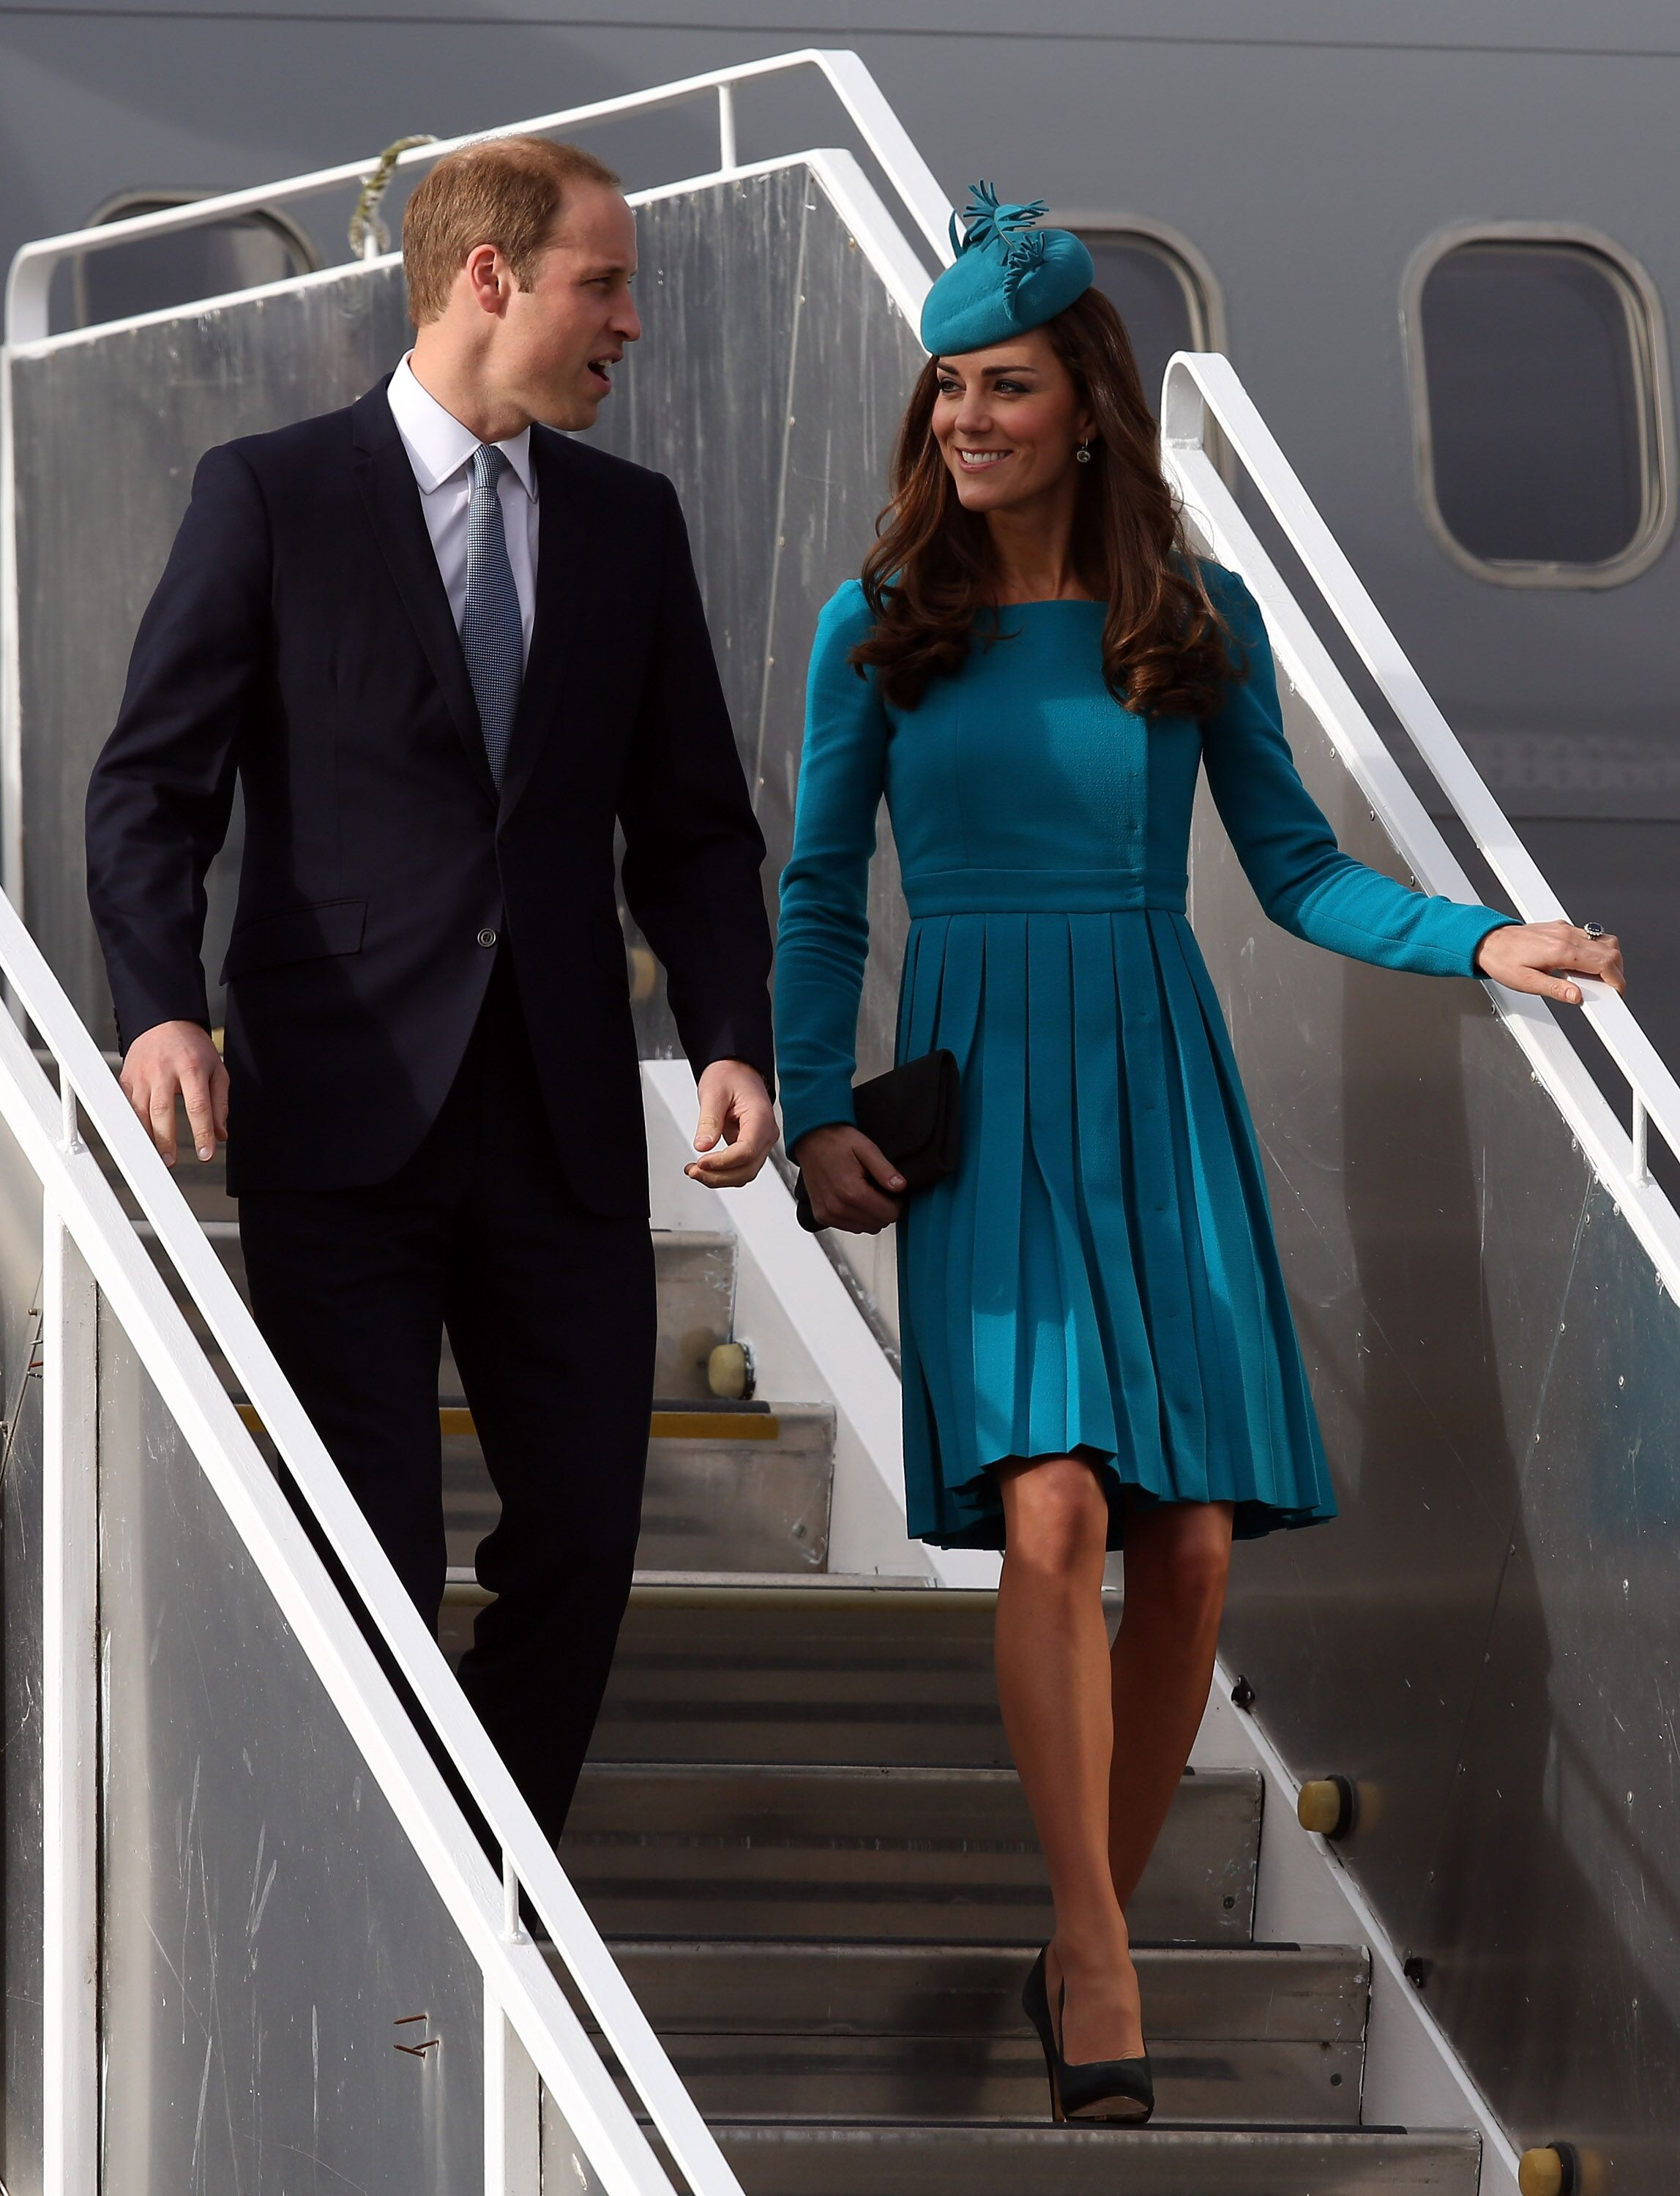 Prince William and Kate arrive at Dunedin International Airport in Dunedin, New Zealand. | Photo: Getty Images